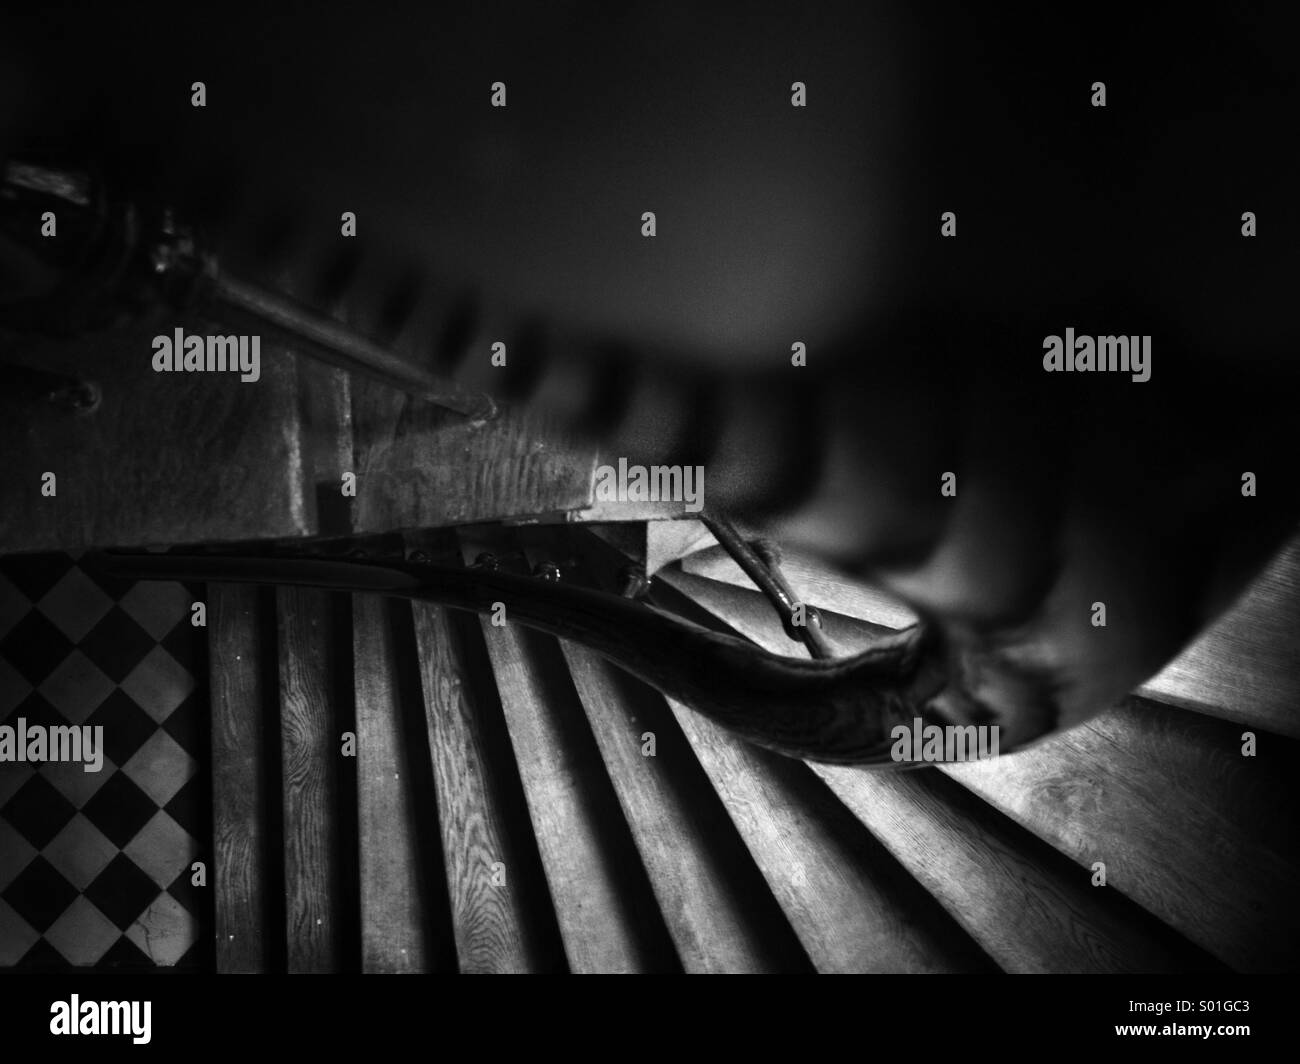 Staircase top view - Stock Image